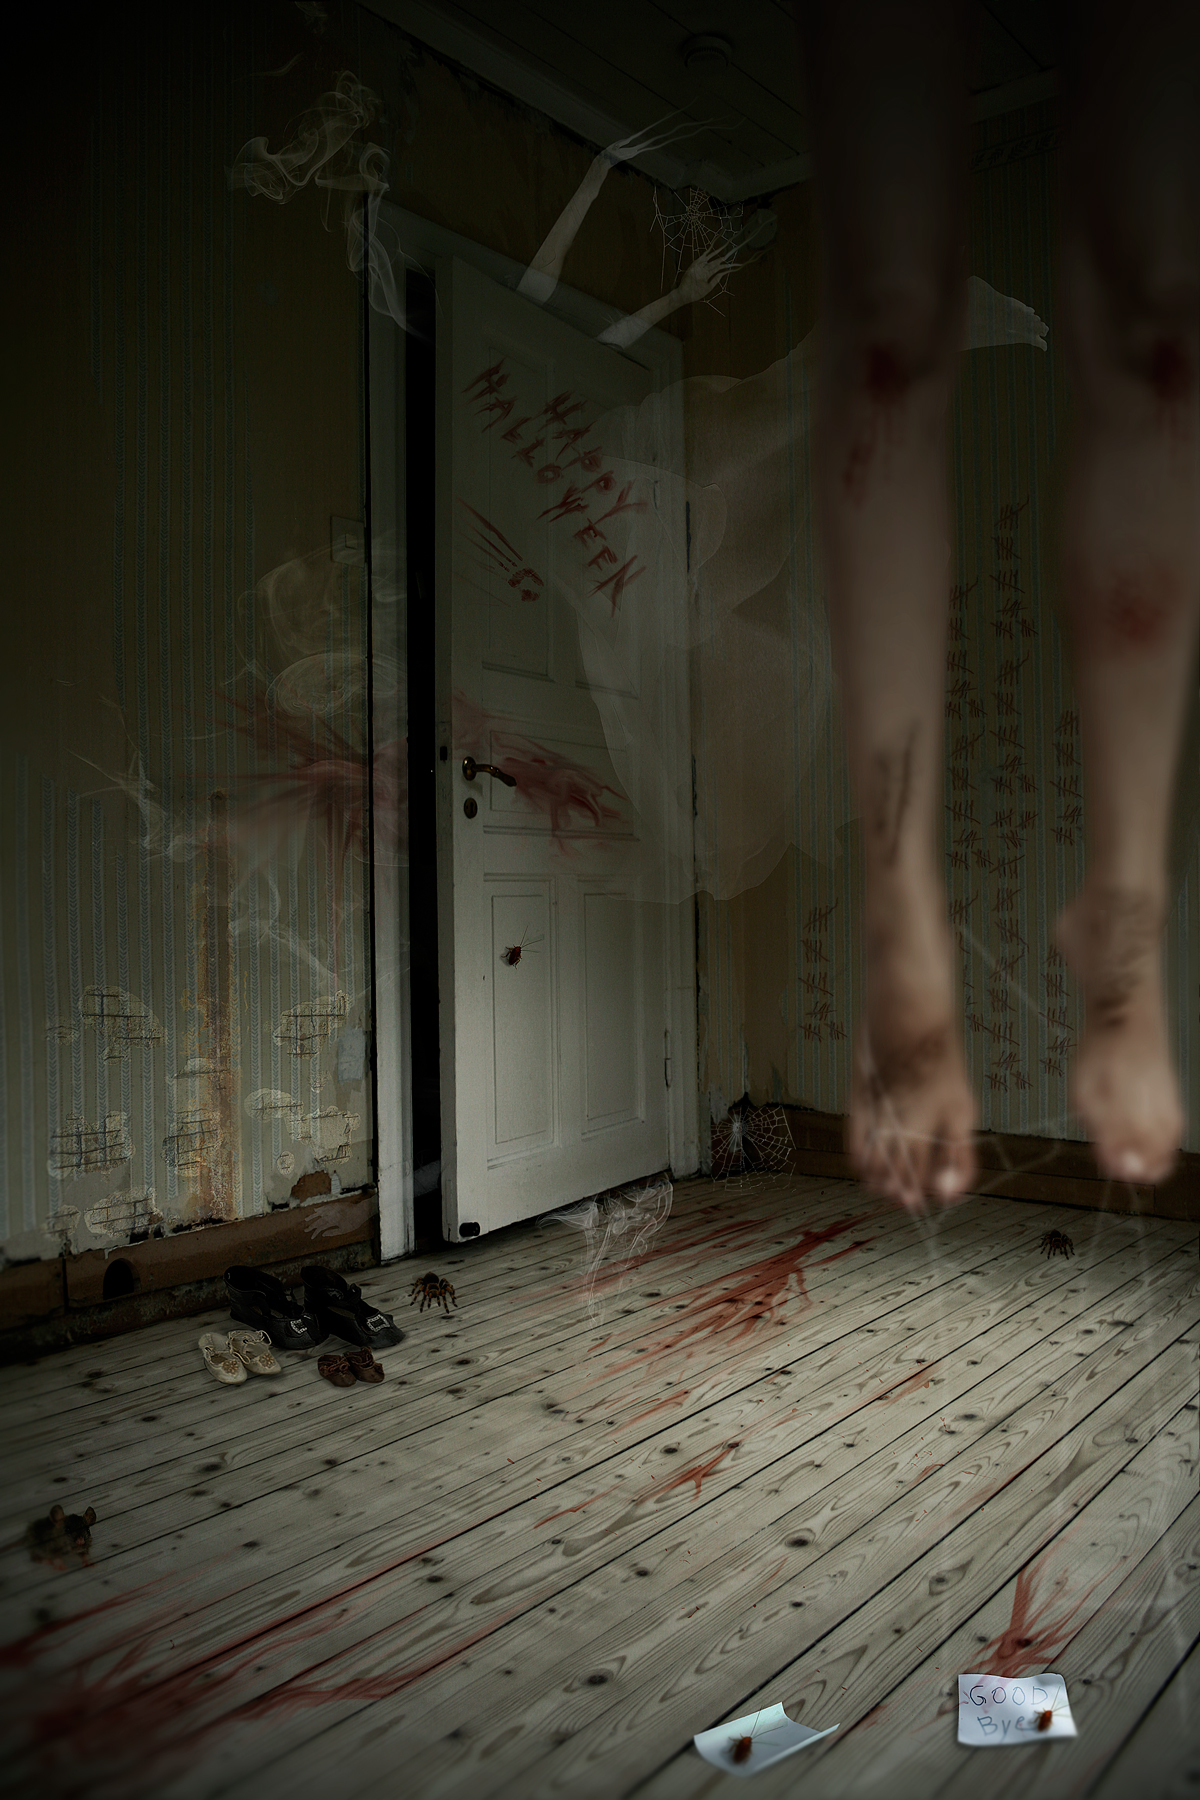 Photoshop submission for 39 haunted houses 2 39 contest for Haunted room ideas